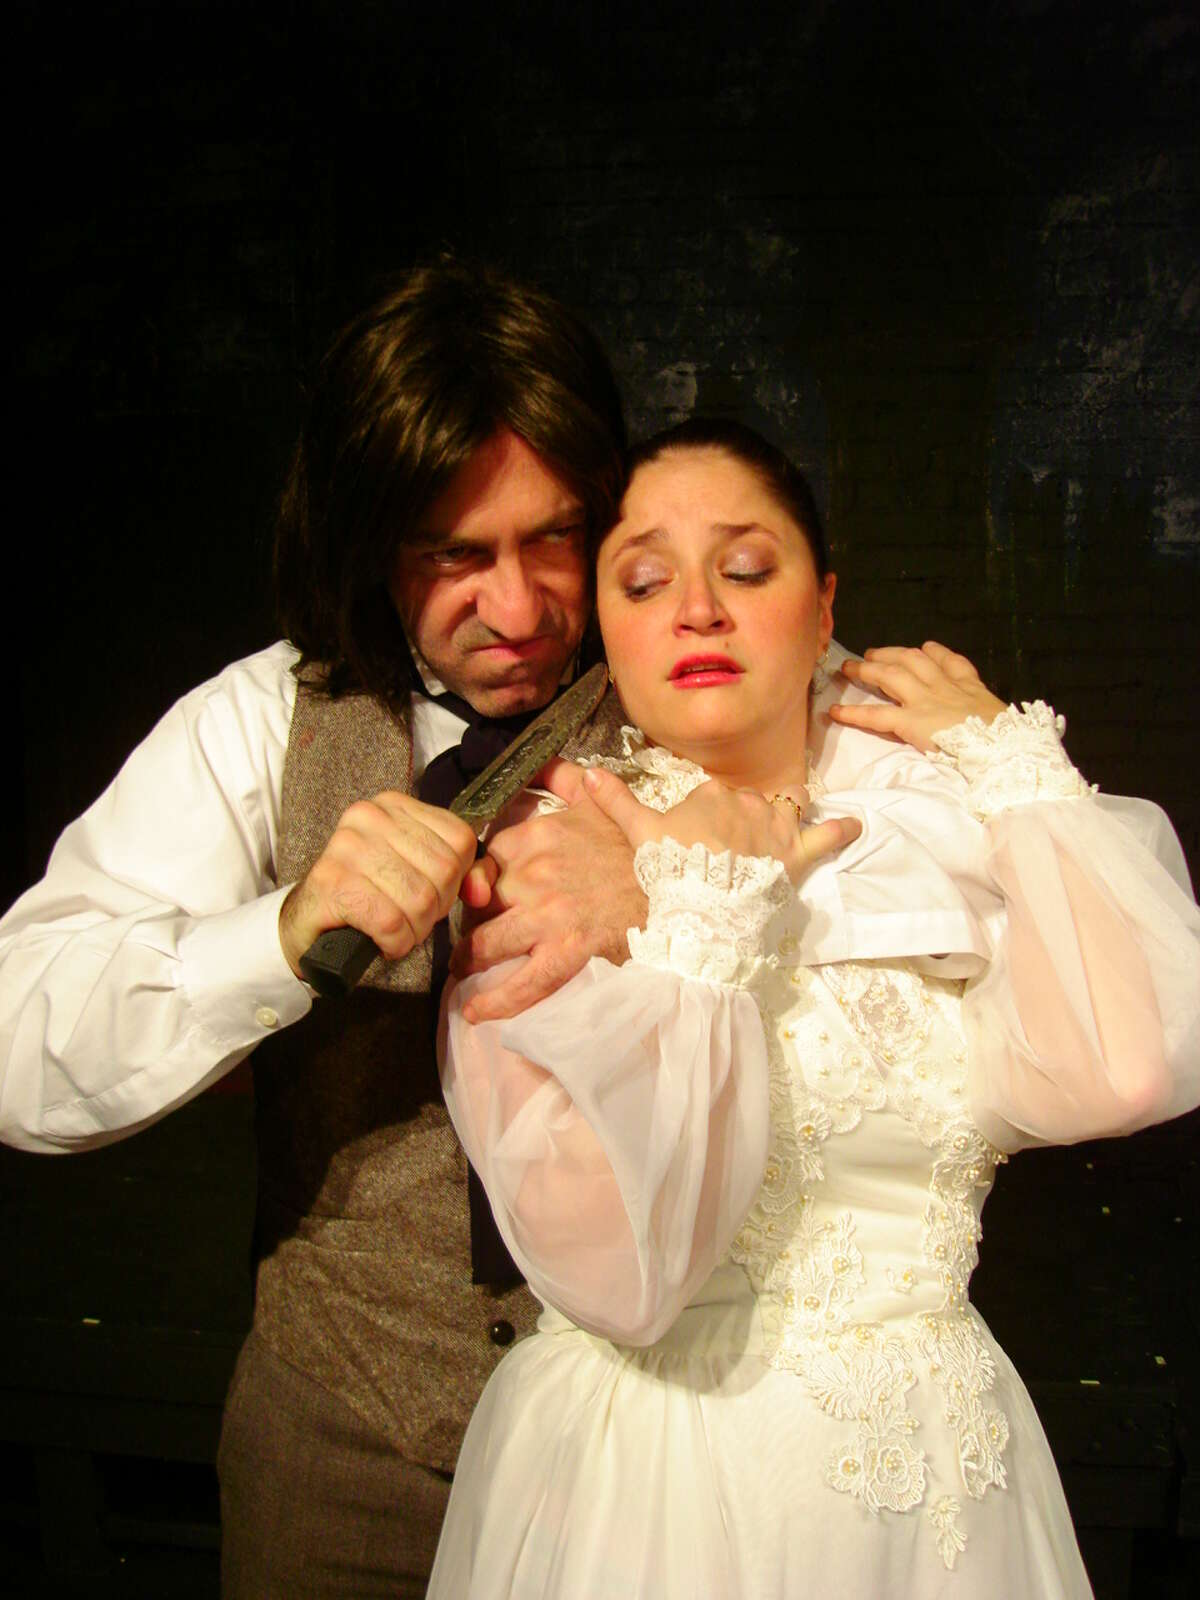 Dr. Jekyll (Luther Chakurian) is about to marry his intended, Emma (Monica Passley) when Mr. Hyde makes an unwanted appearance in the Fort Bend Theatre production of